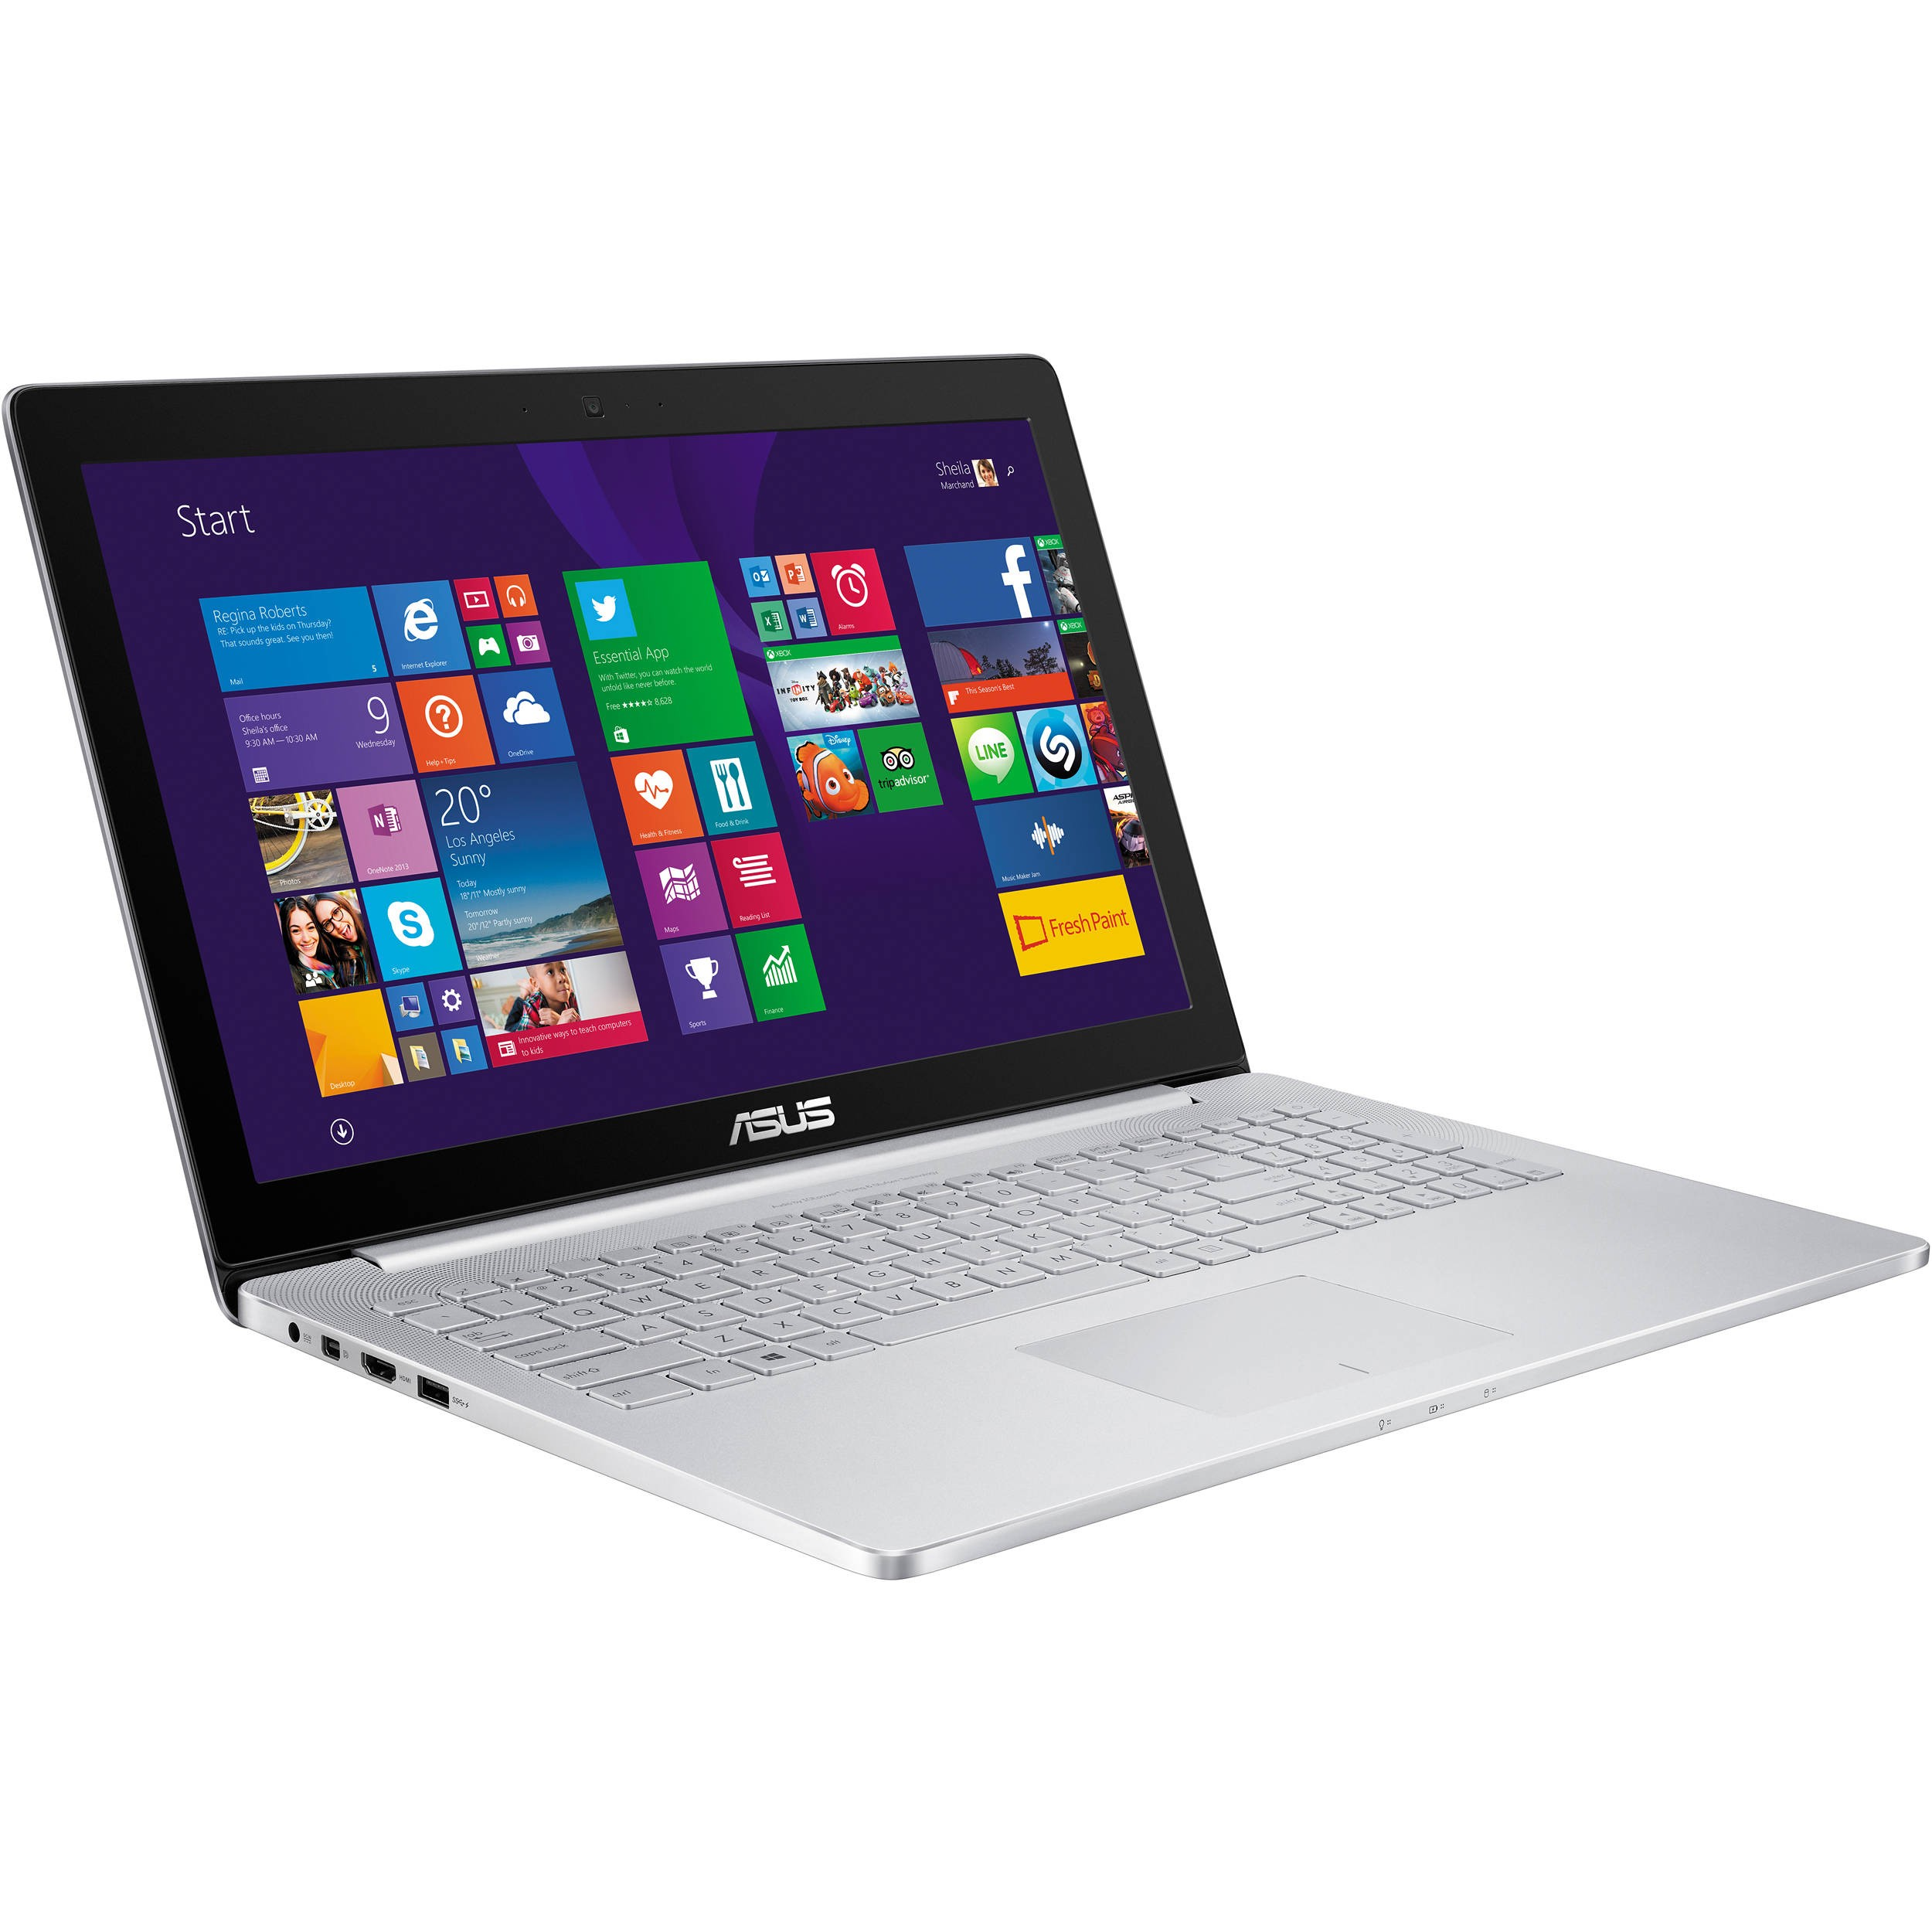 Asus ZENBOOK UX31E-RY LCD